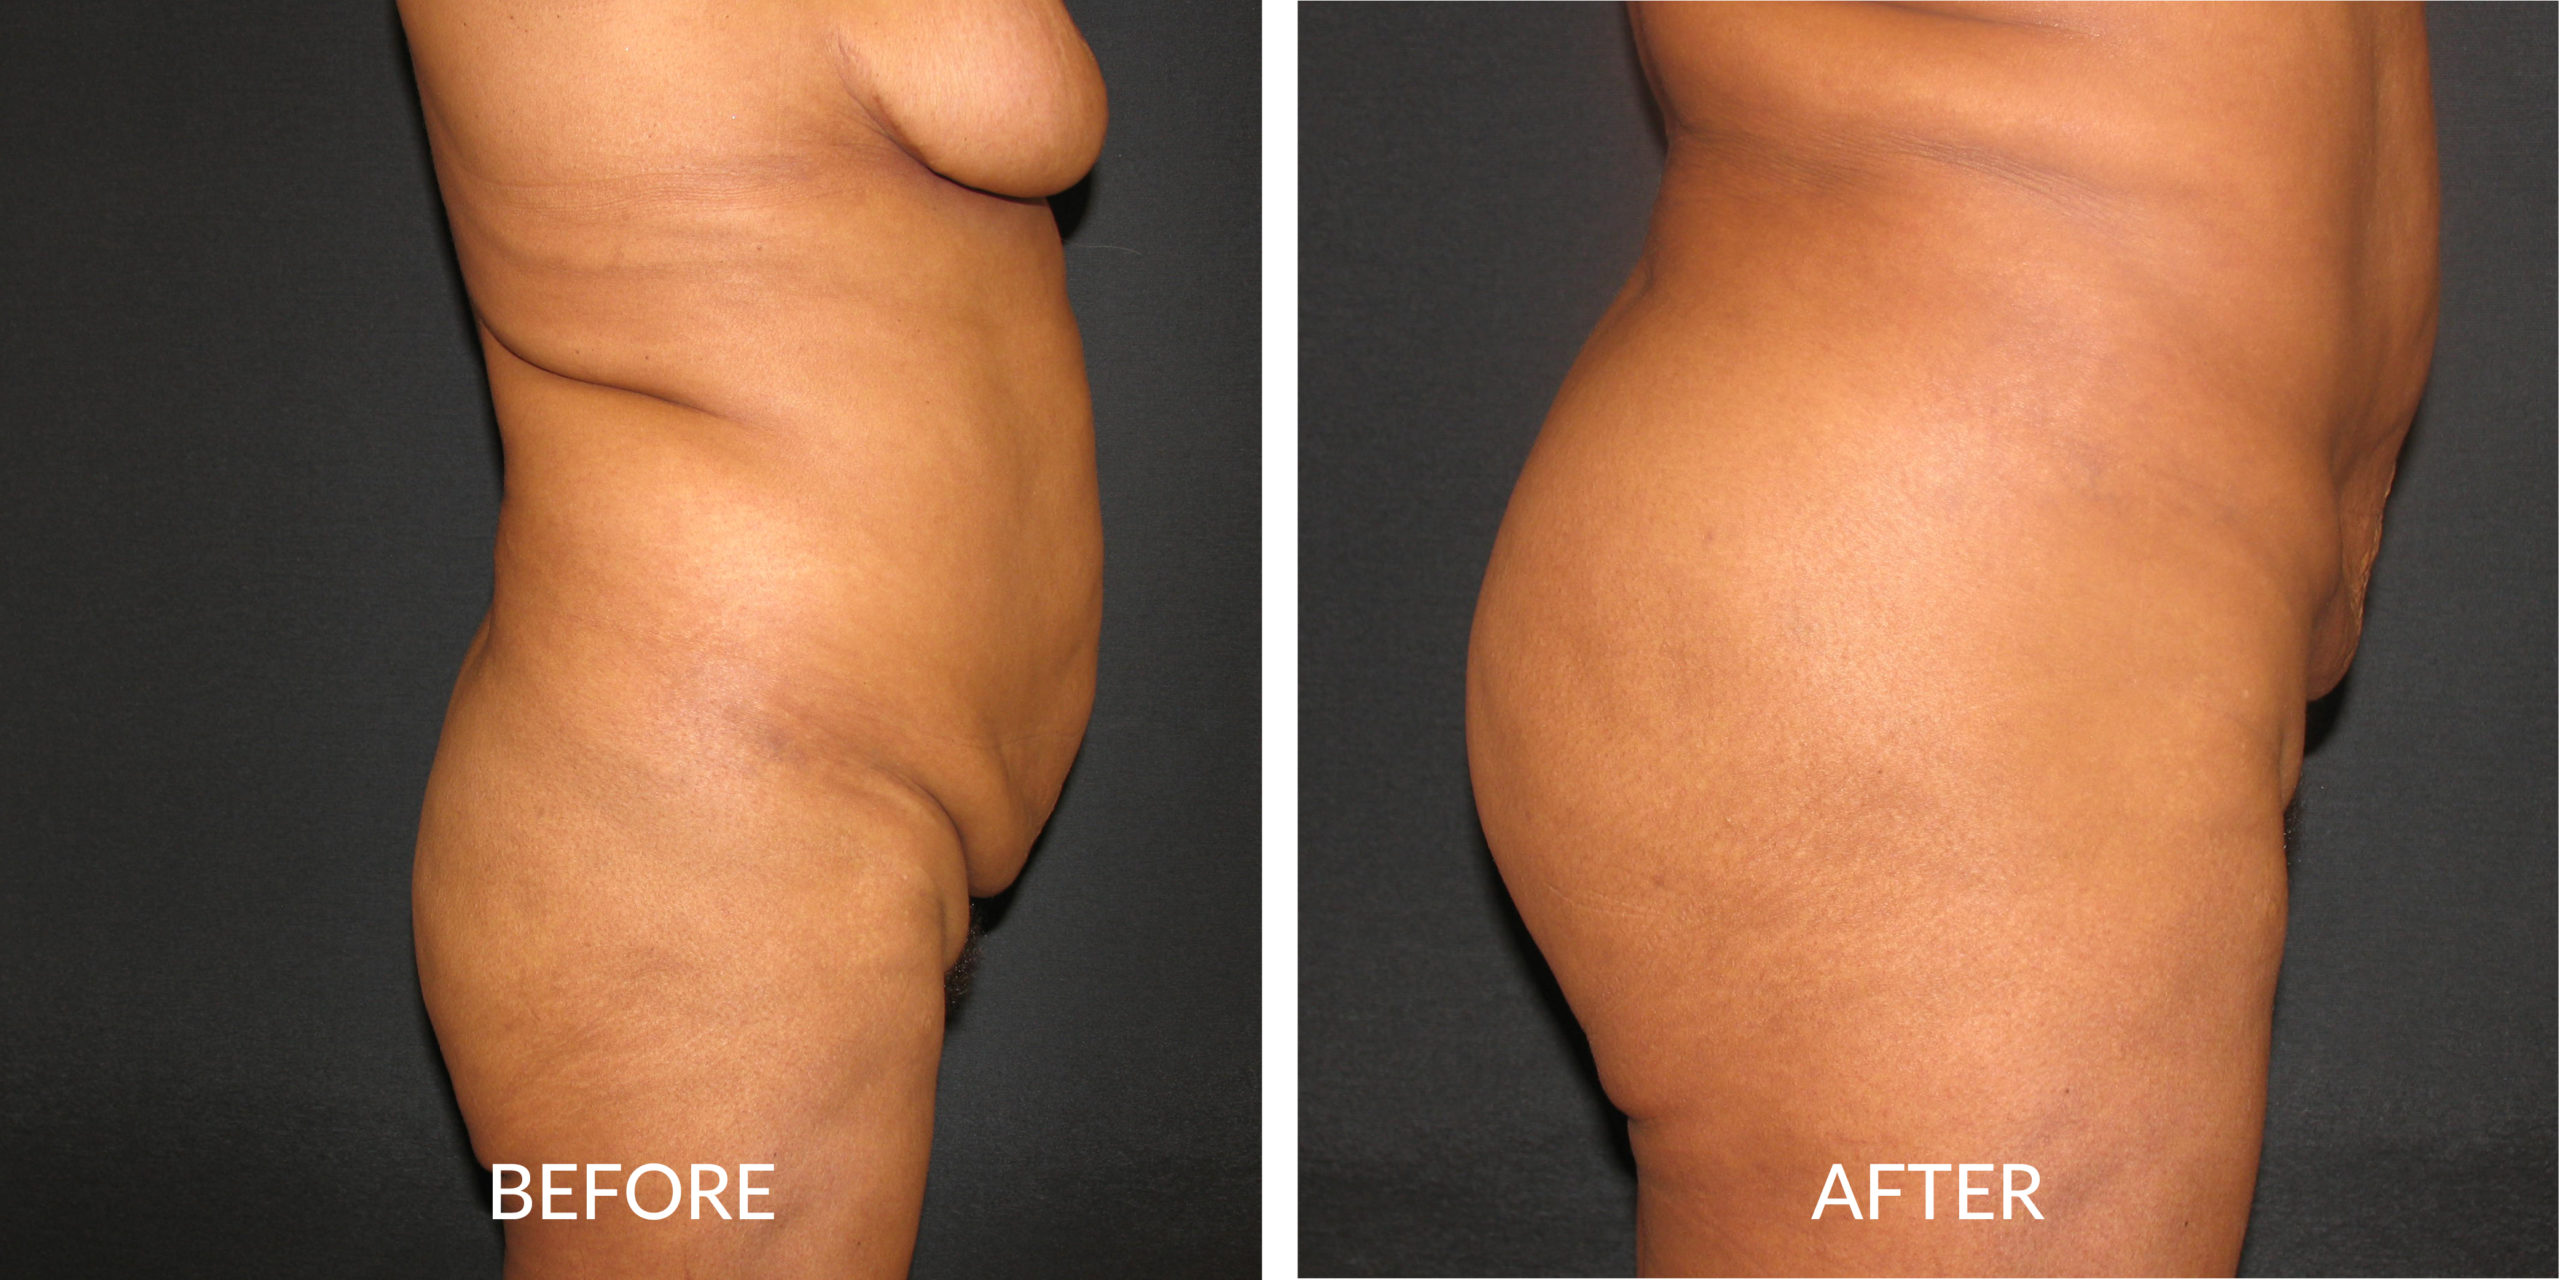 Before & After Buttocks Augmentation